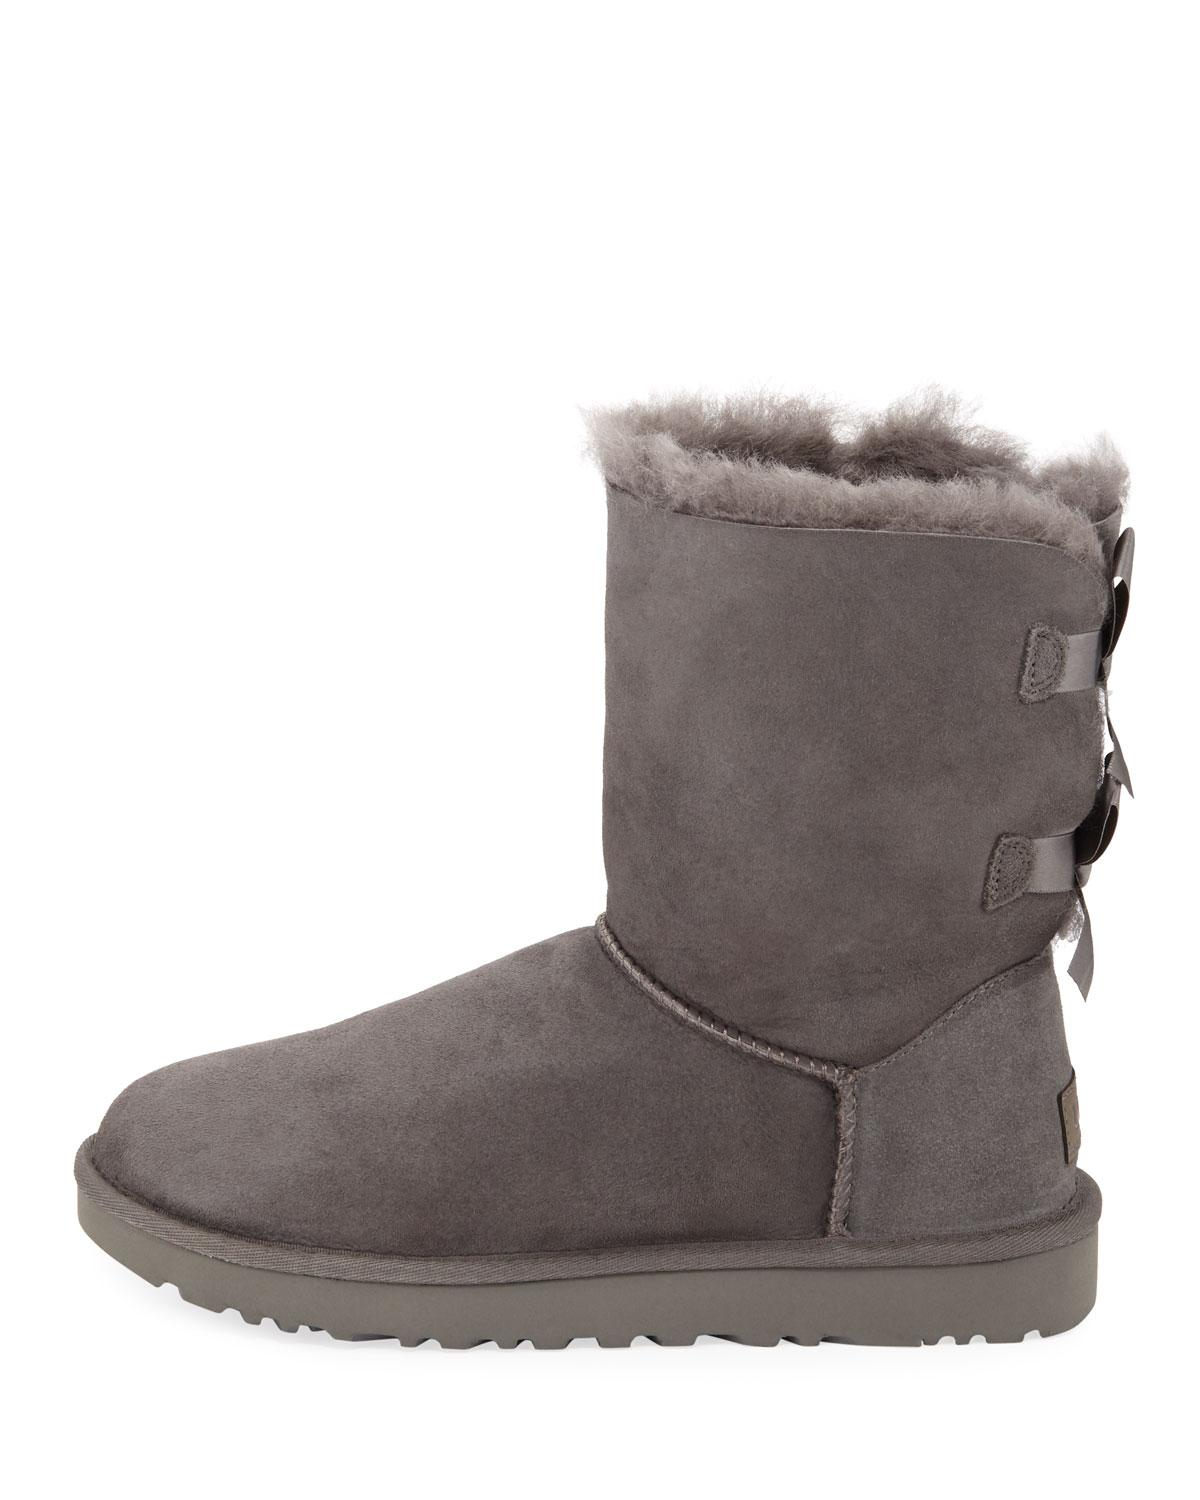 69af318aa12 Lyst - UGG Bailey Bow Ii Boots in Gray